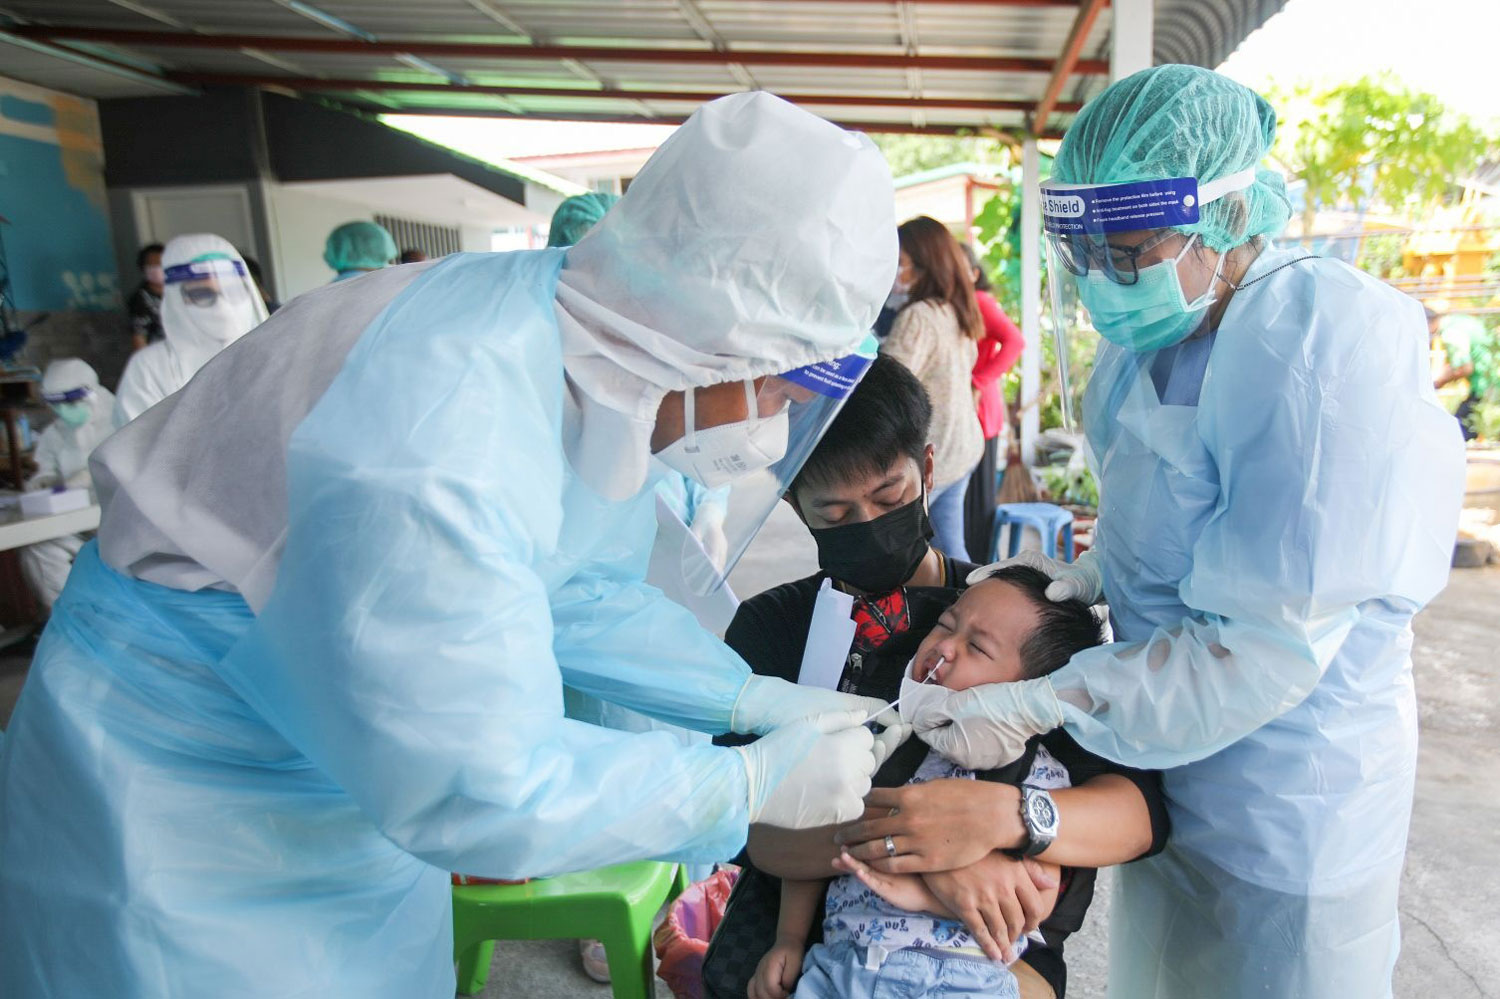 A boy reacts as a health worker takes a nasal swap with antigen test kit at a Covid-19 testing venue in Pattaya, Chon Buri, on Wednesday. The Pattaya City municipality tested 530 people at seven communities on Wednesday, and 29 were positive. (Photo:@Prpattayacity Facebook page)